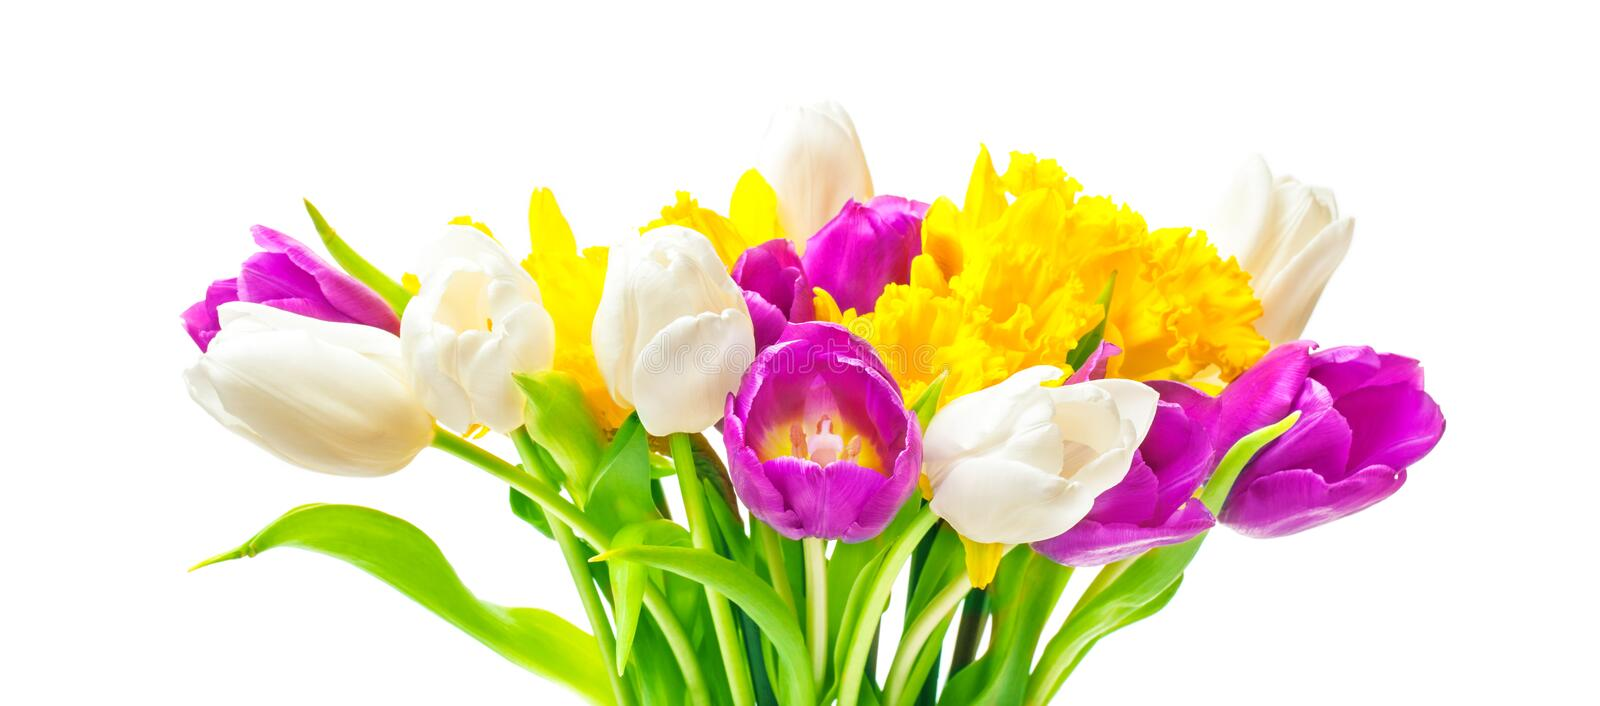 Daffodils, tulips, Easter bouquet stock photos